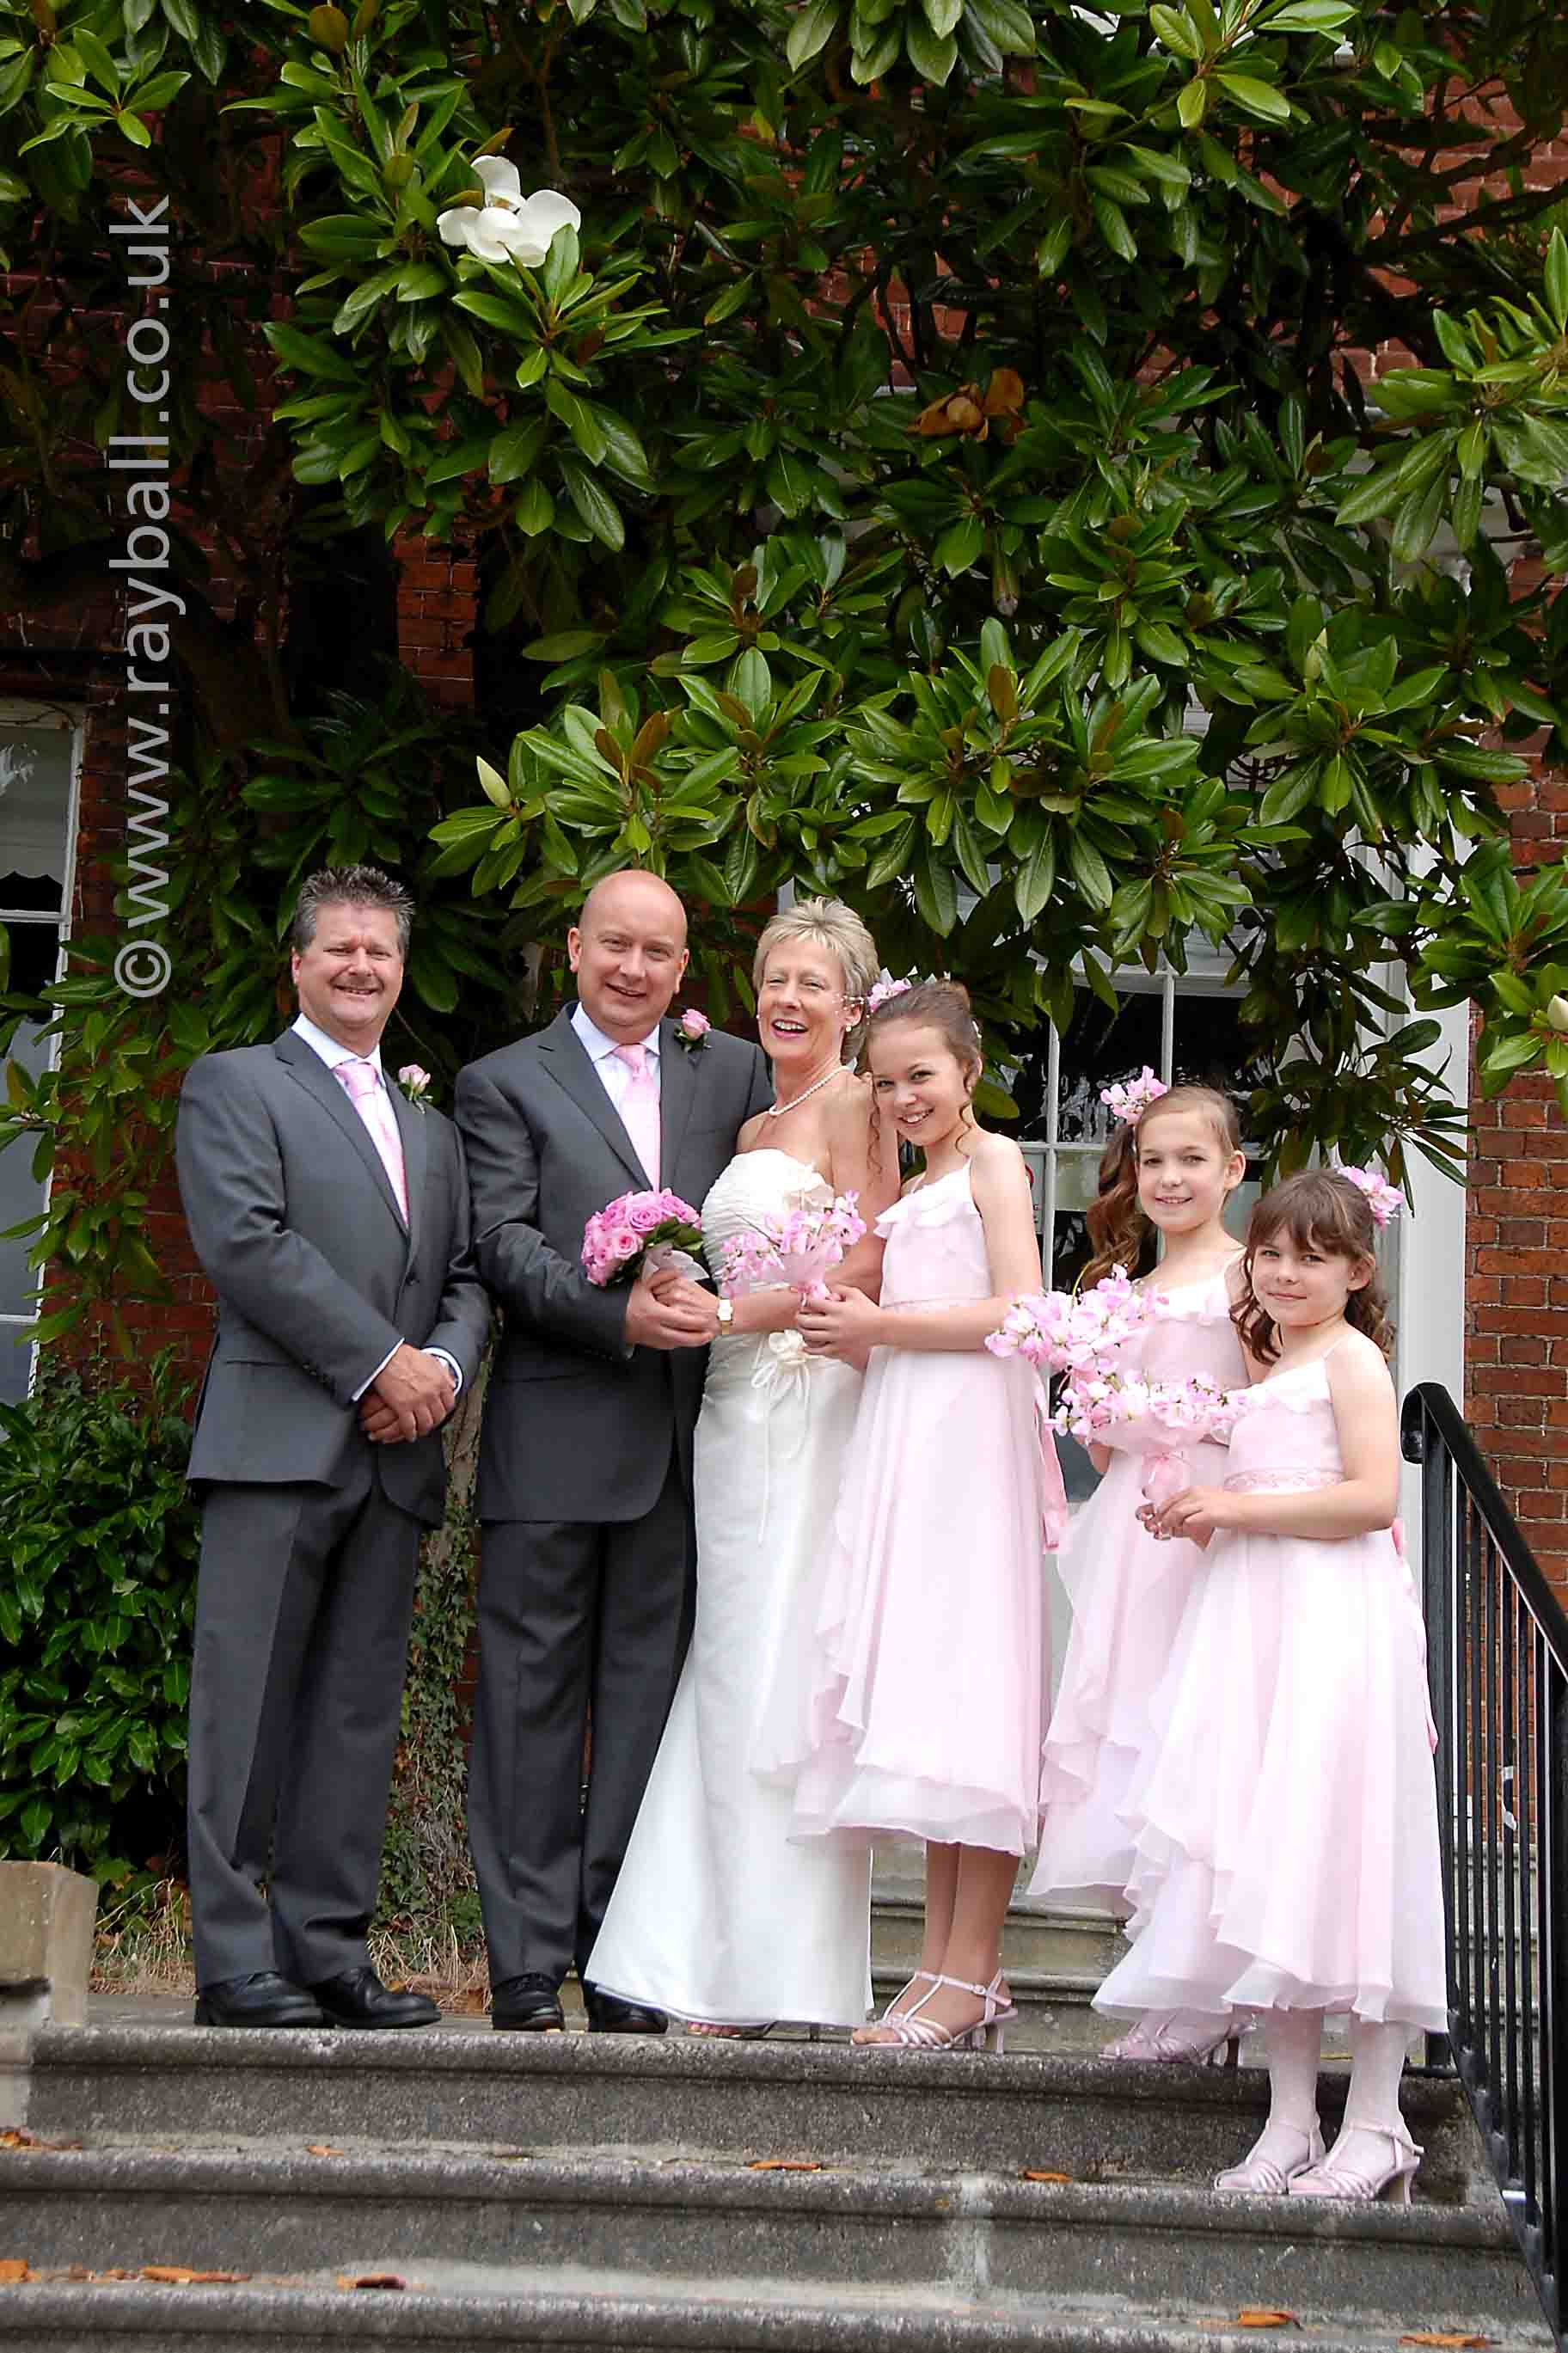 Wedding party at Leatherhead Registry Office.